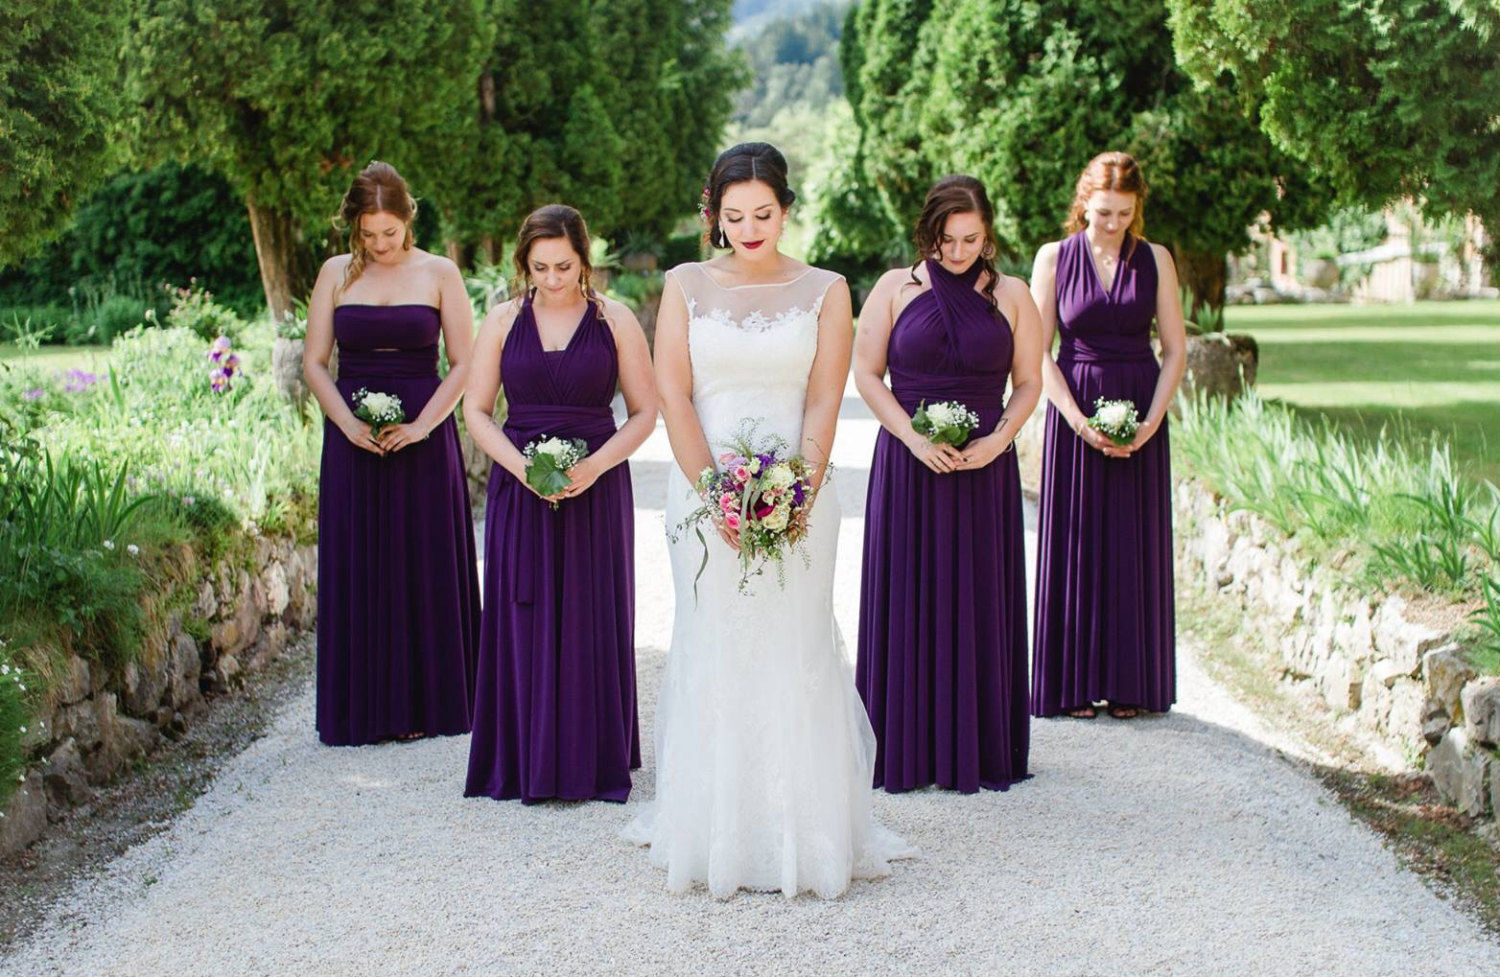 Dress purple purple infinity dress floor length purple dress bridesmaid dress purple purple infinity dress floor length purple dress violet purple dress ombrellifo Image collections